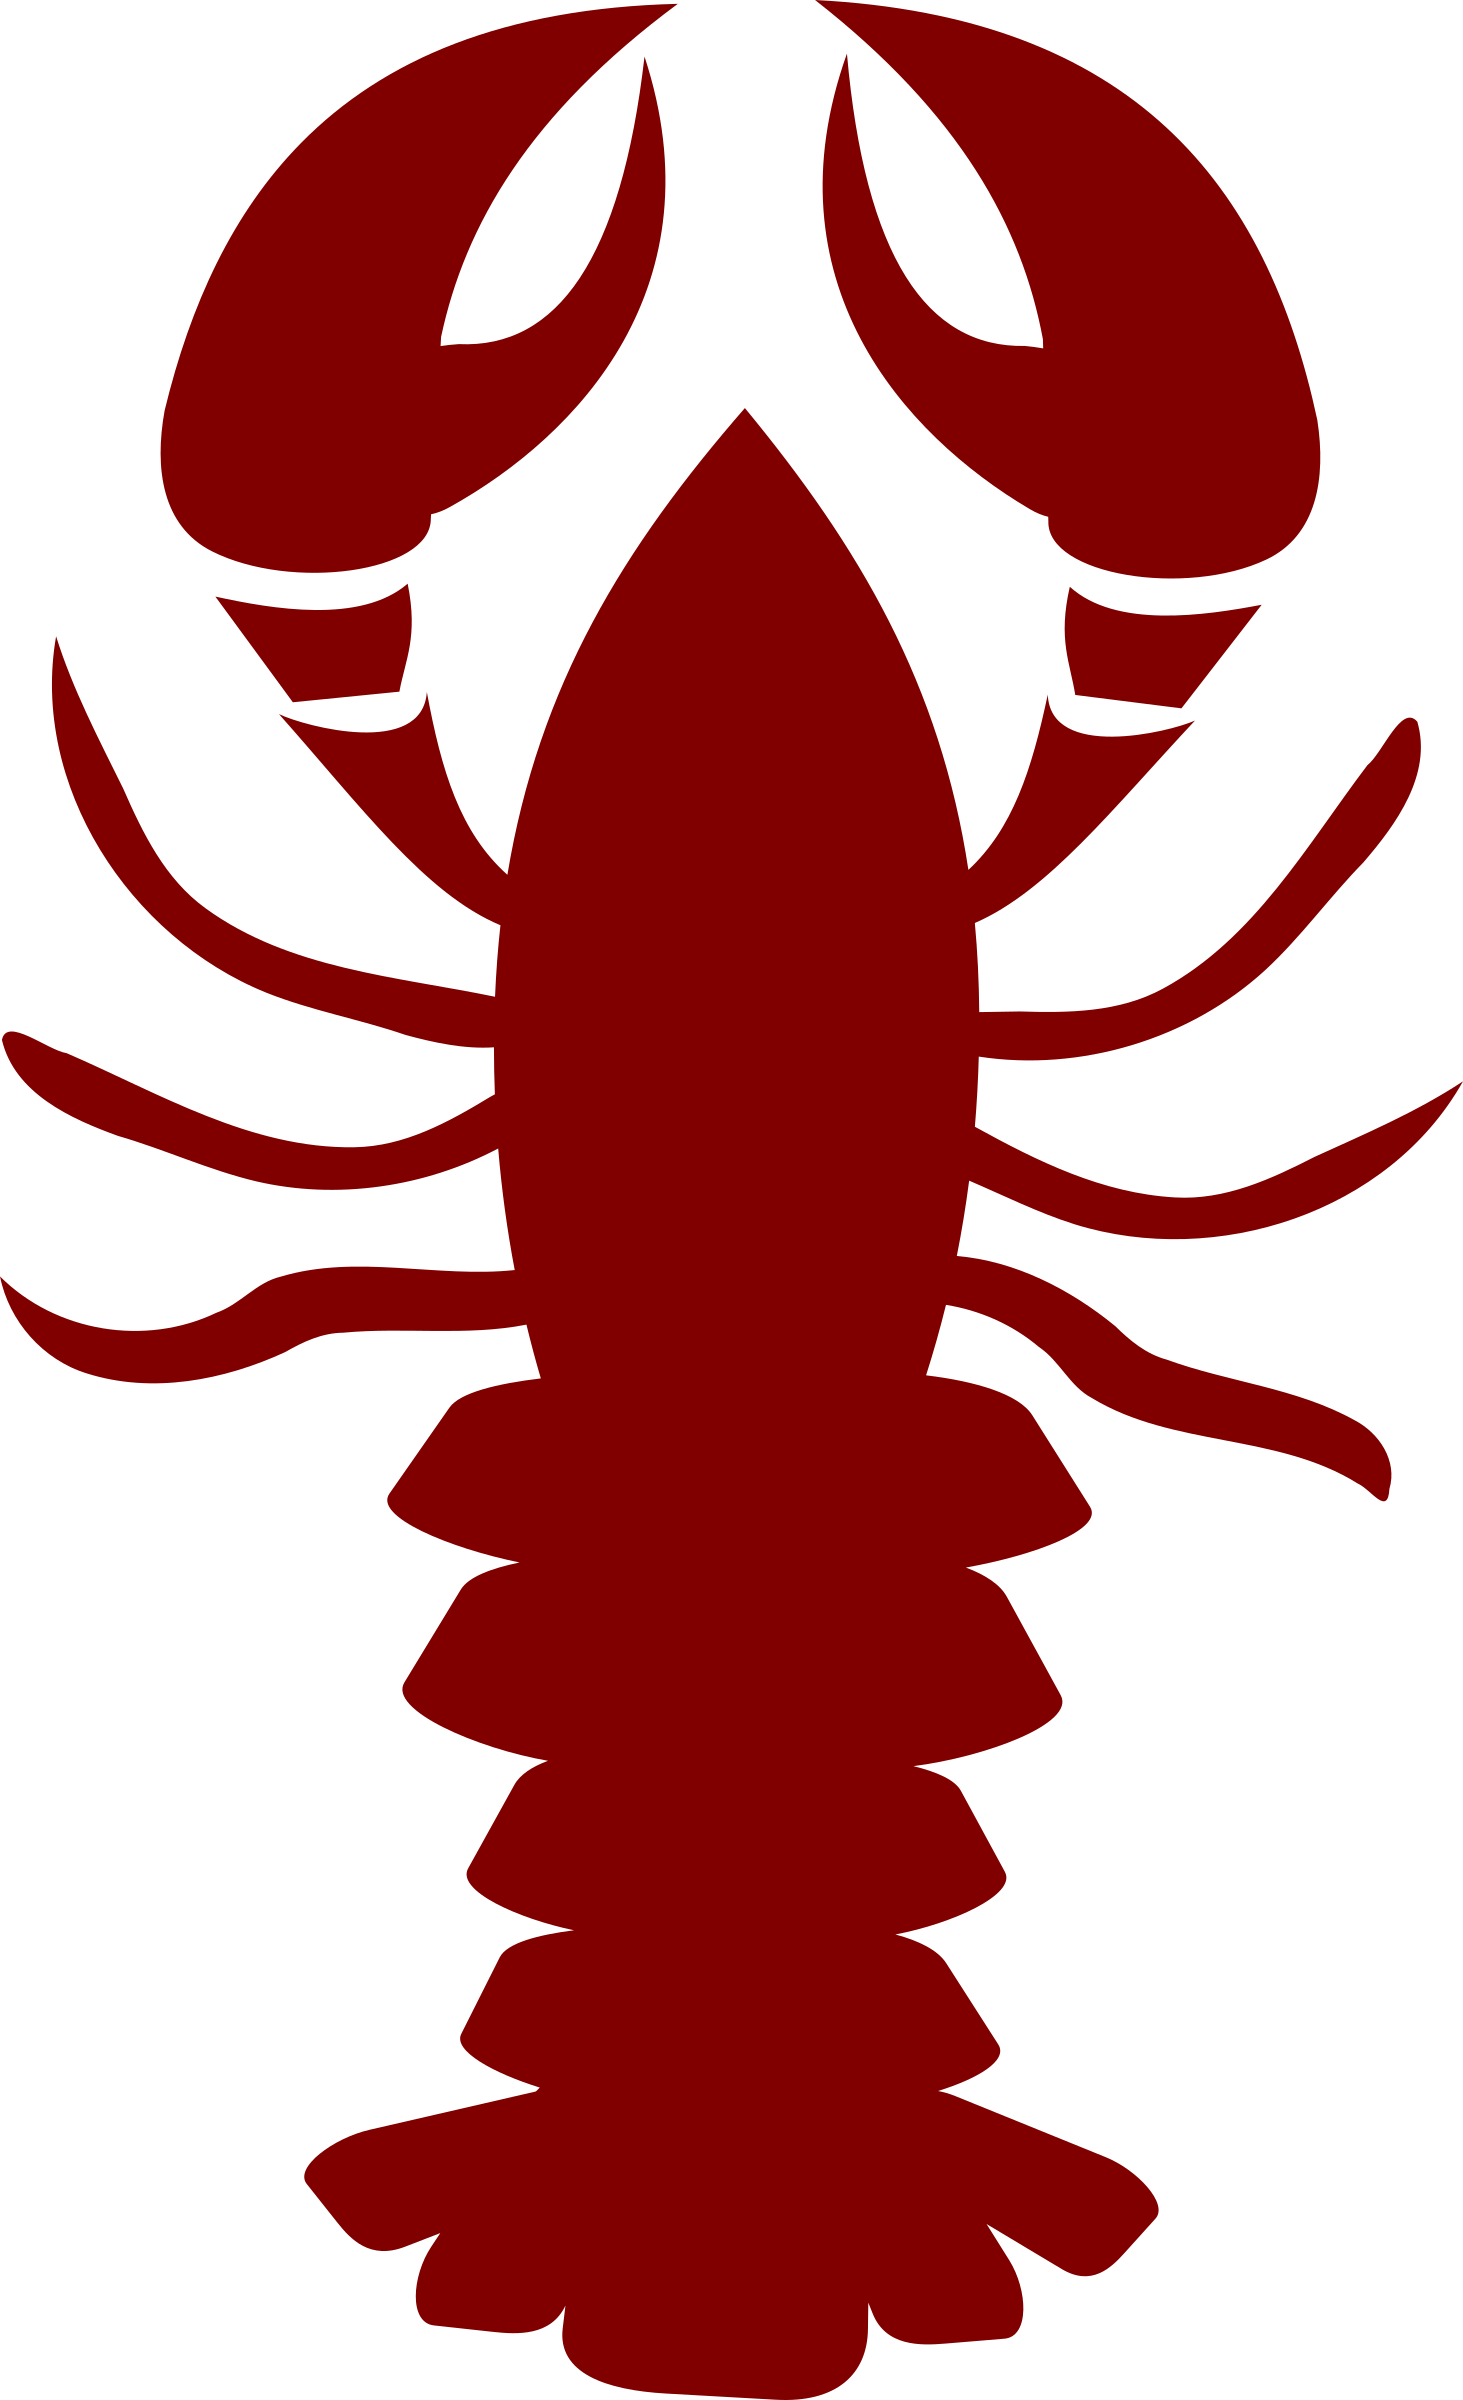 Clipart lobster stylised image #22689.